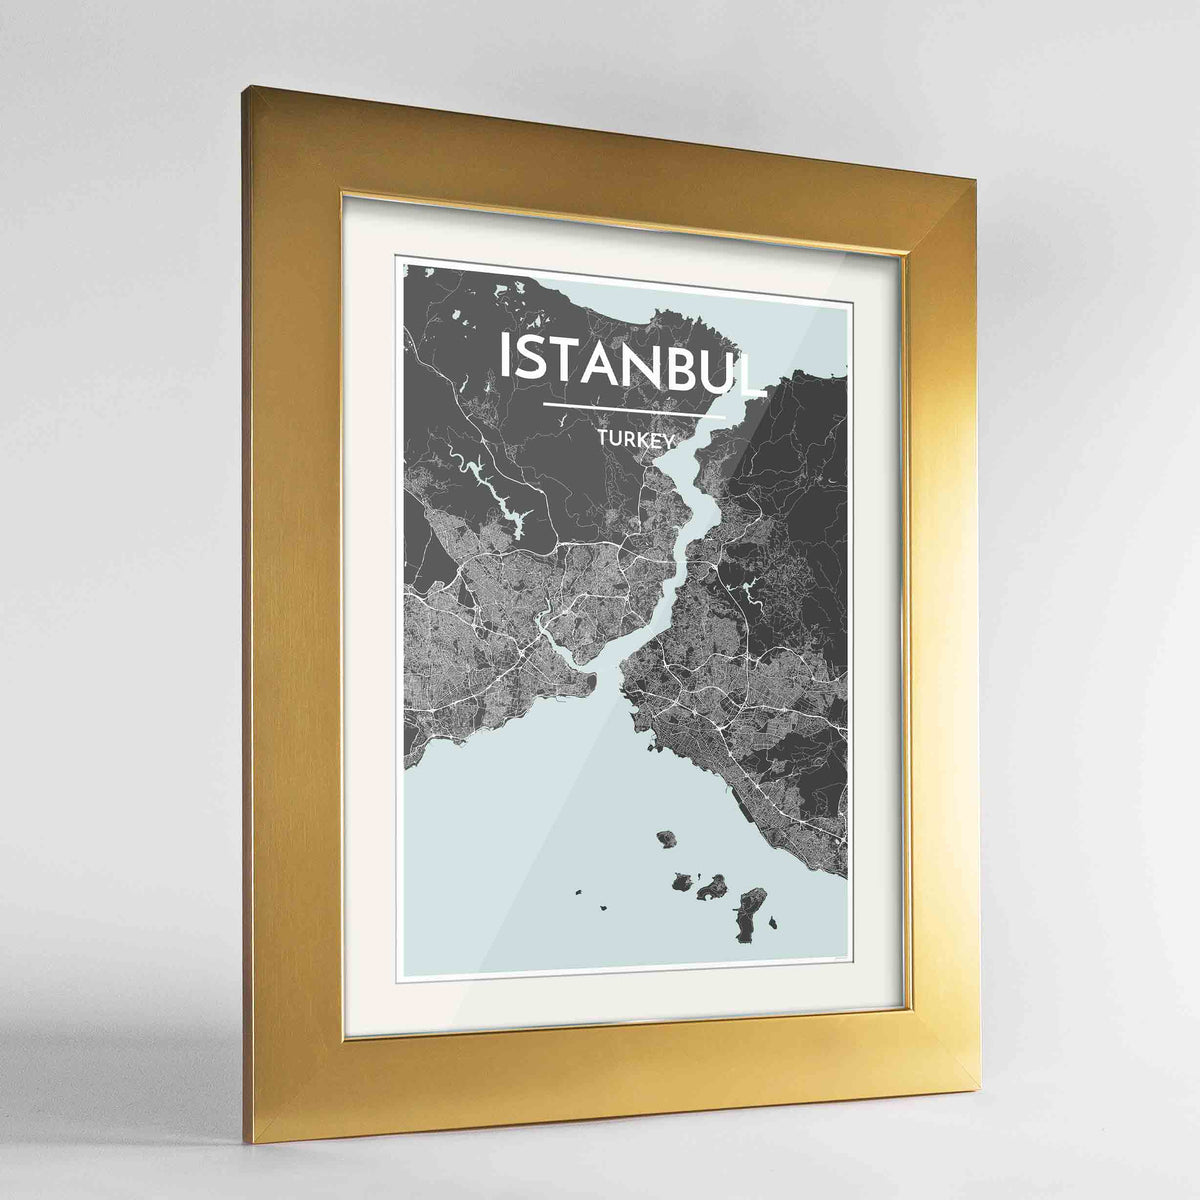 "Framed Istanbul Map Art Print 24x36"" Gold frame Point Two Design Group"